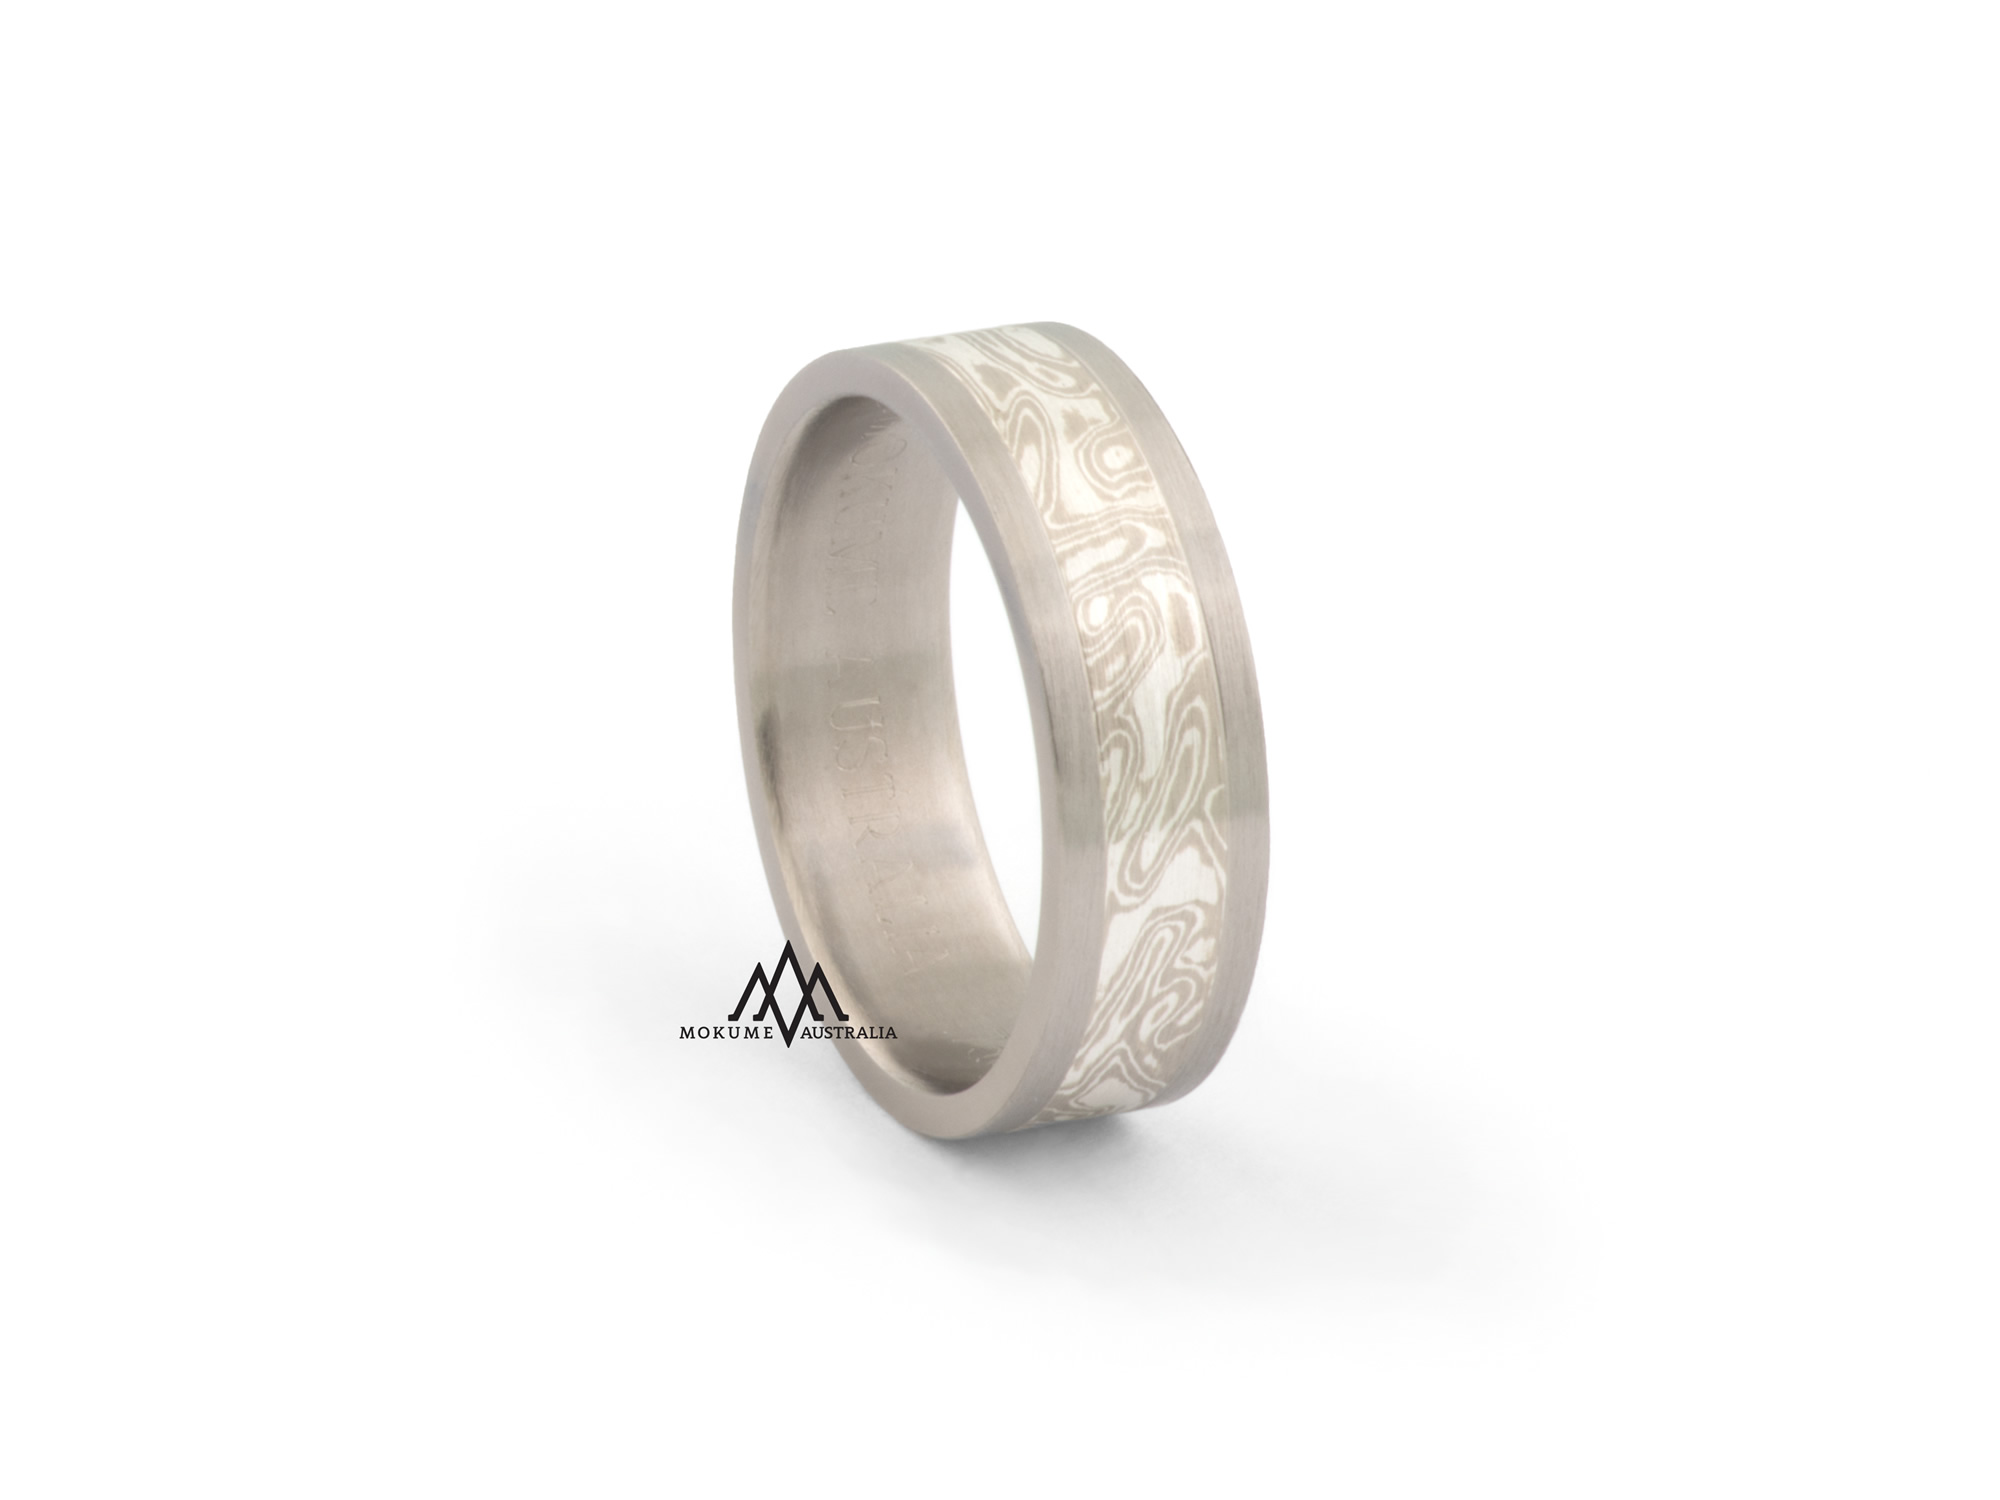 Grey/white centre flat mokume-gane ring